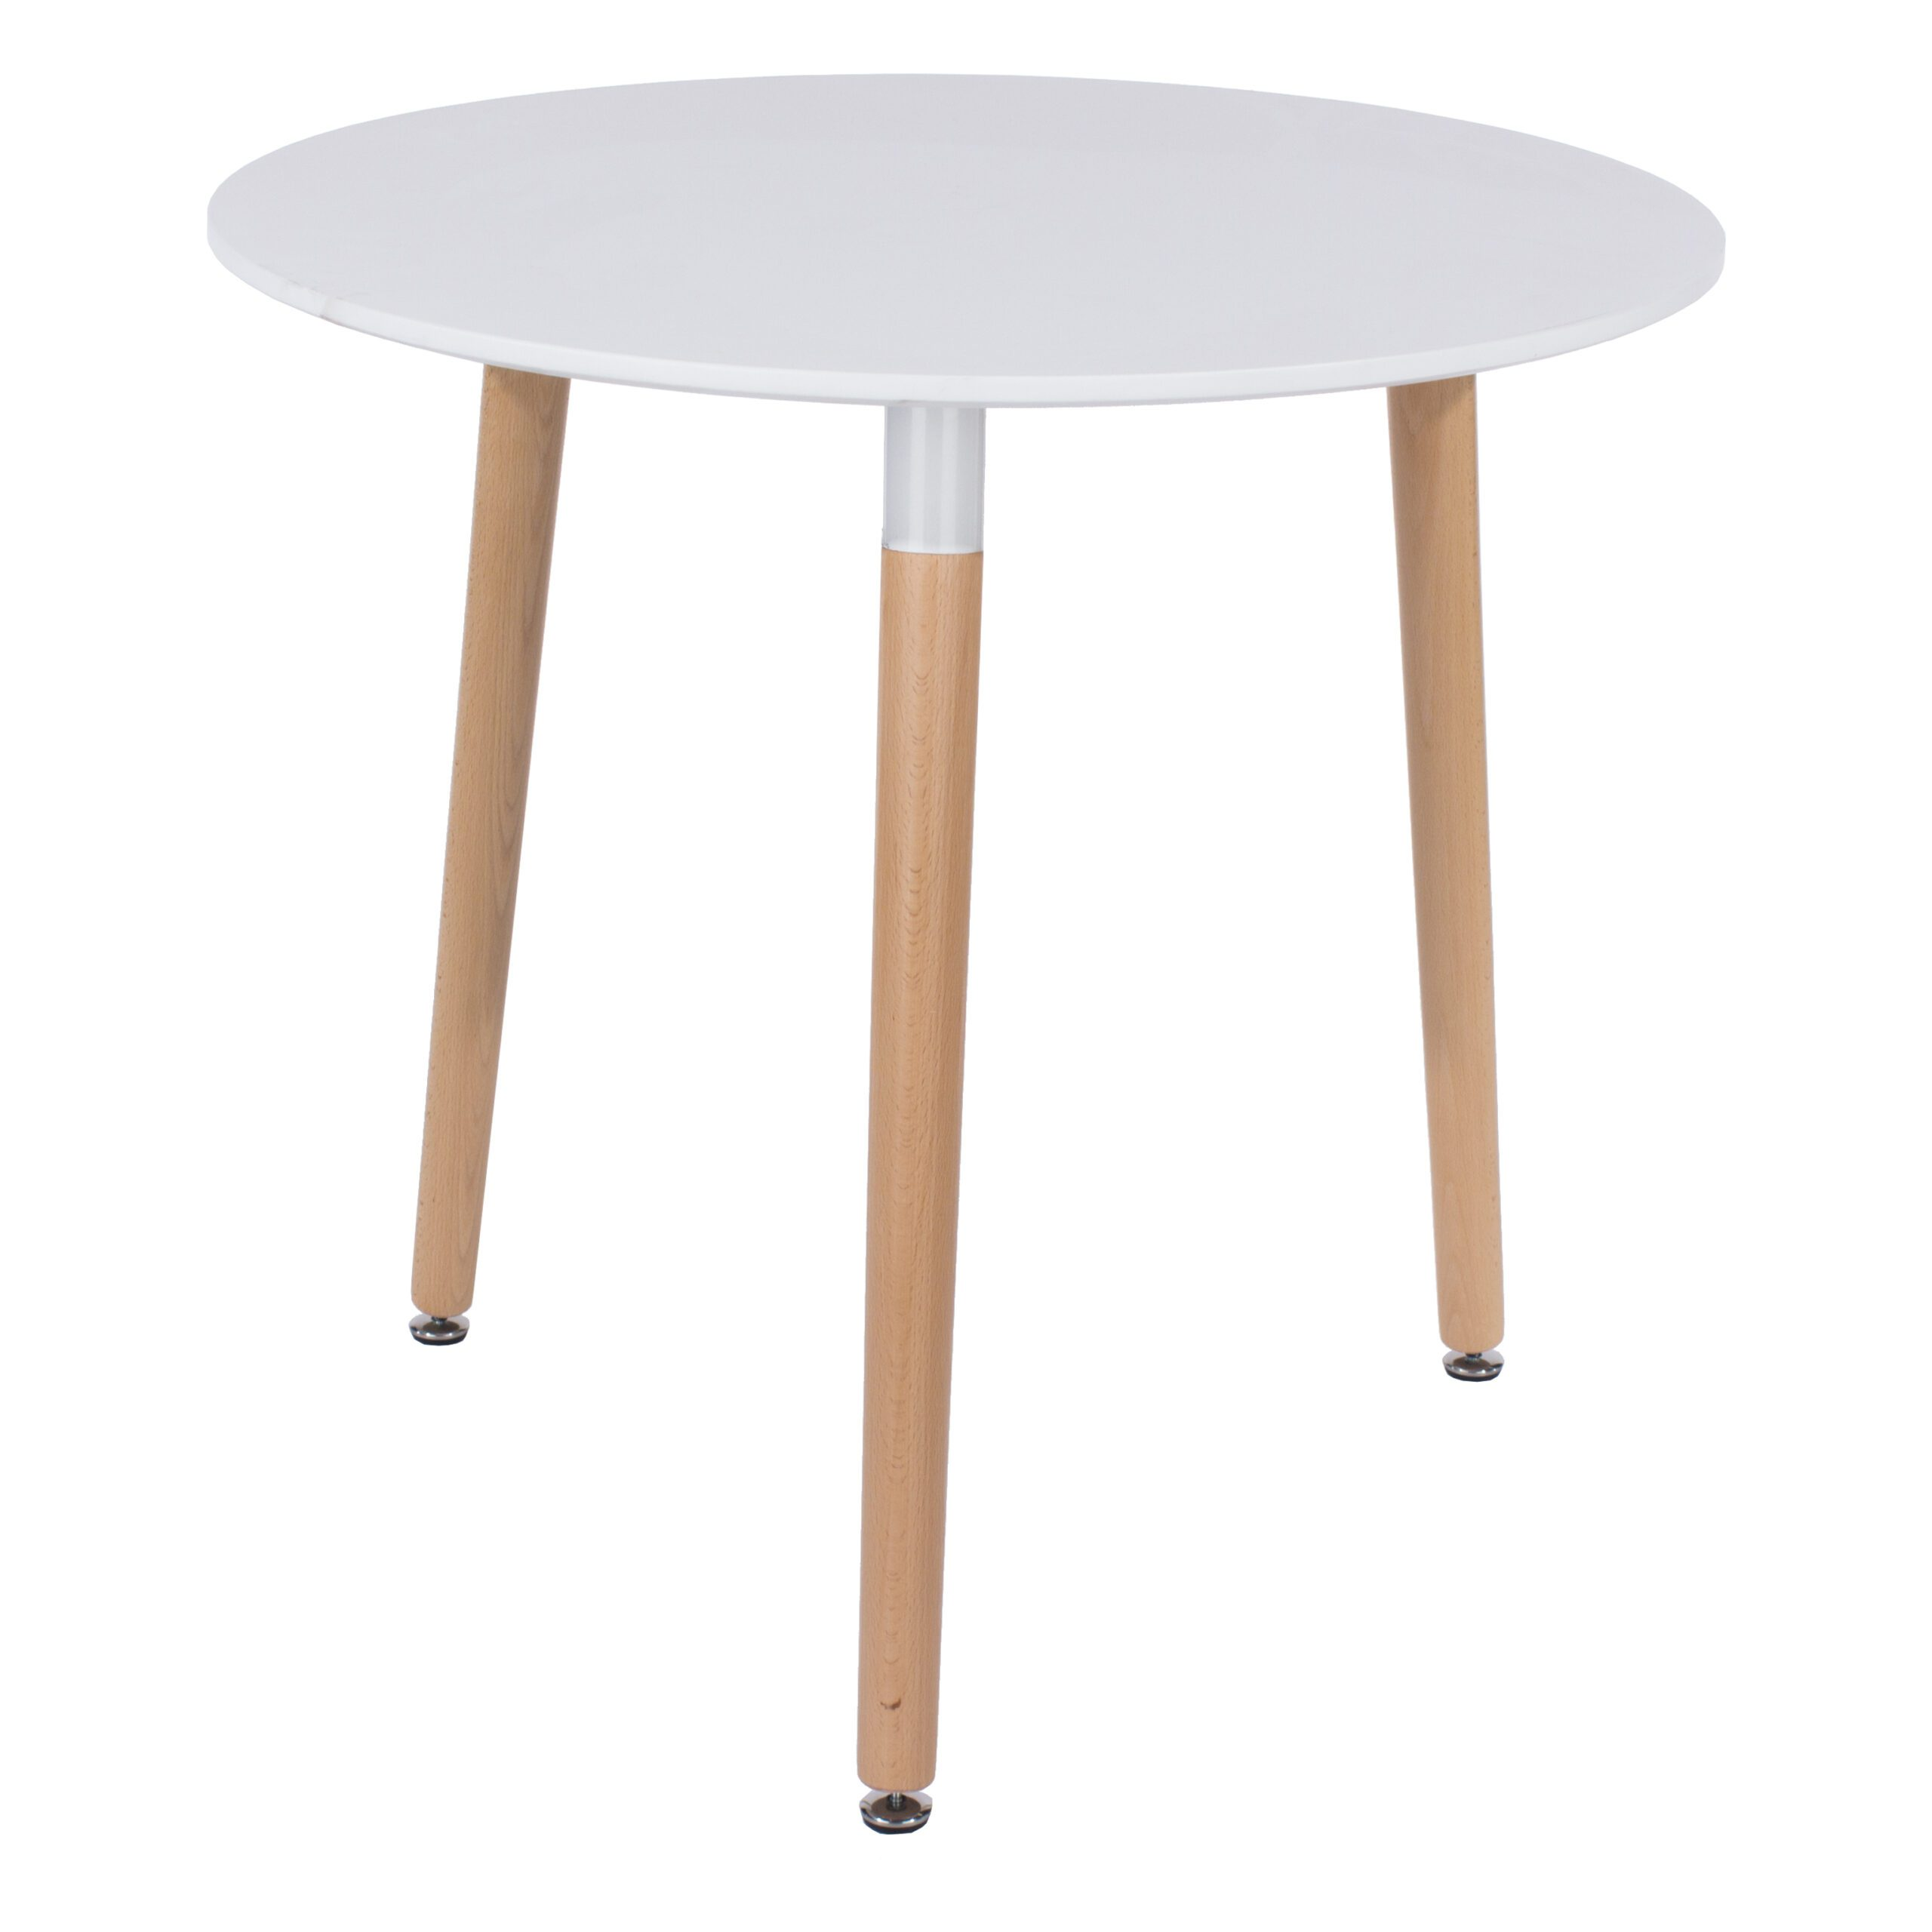 Penny Round Table Wooden Legs White